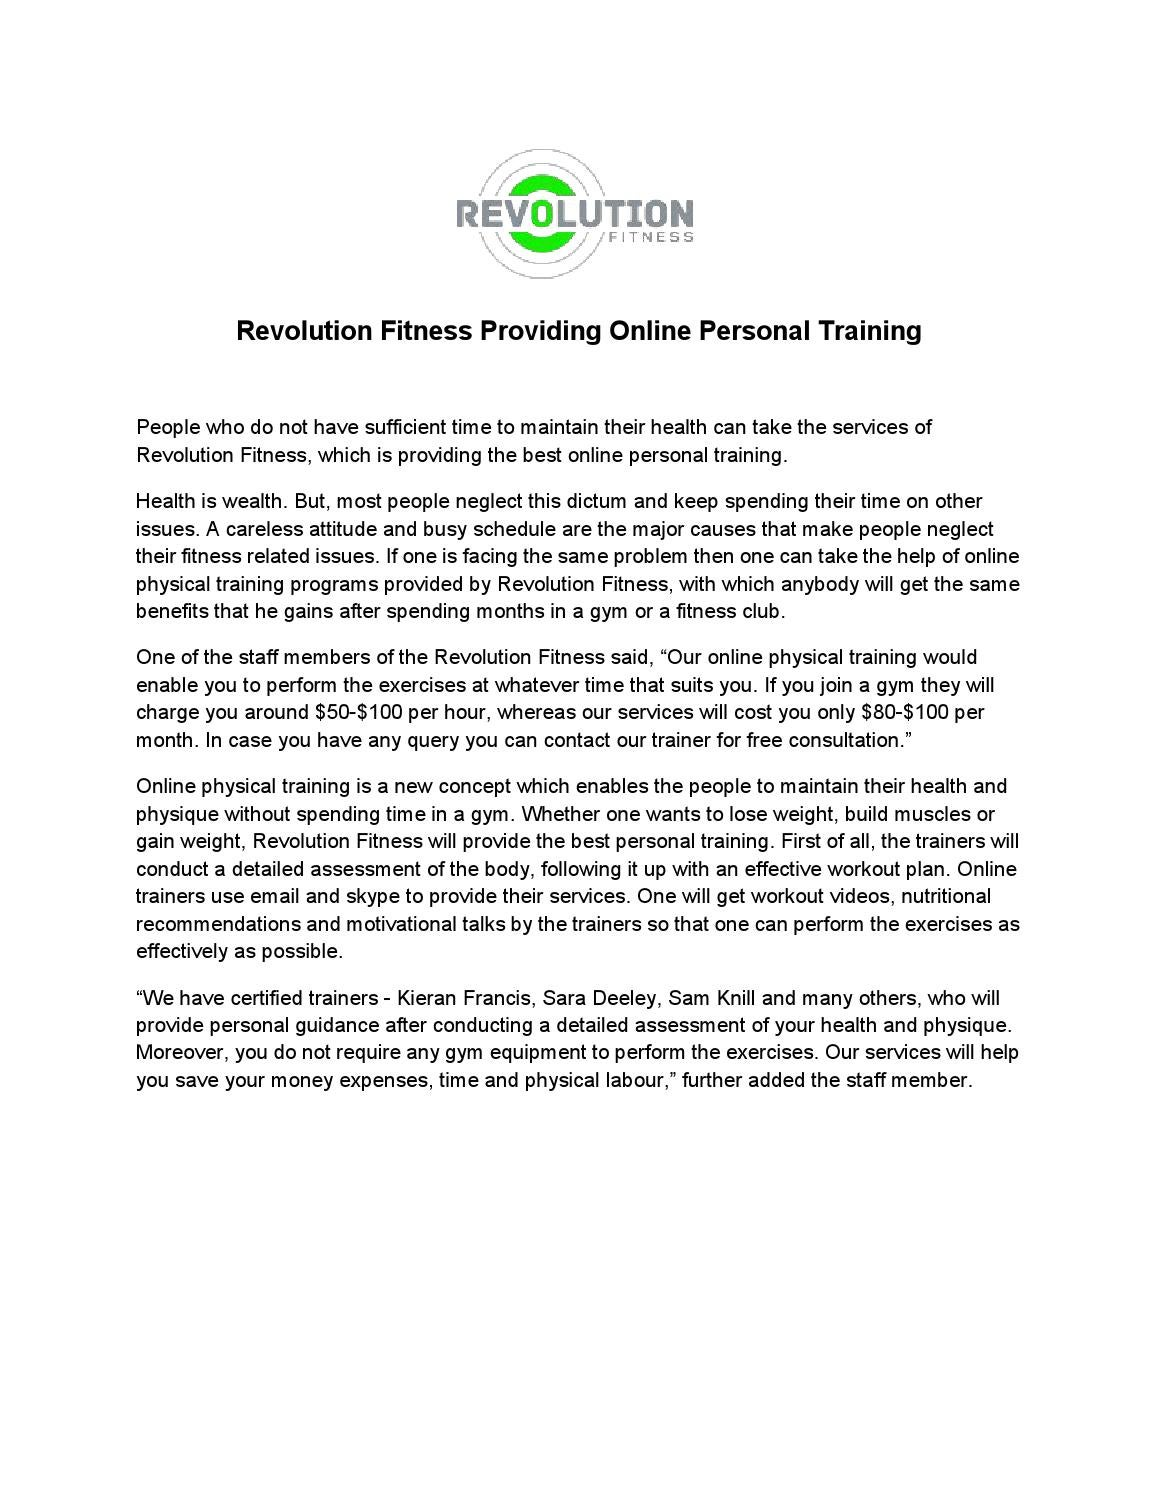 Revolution Fitness Providing Online Personal Training By Harry